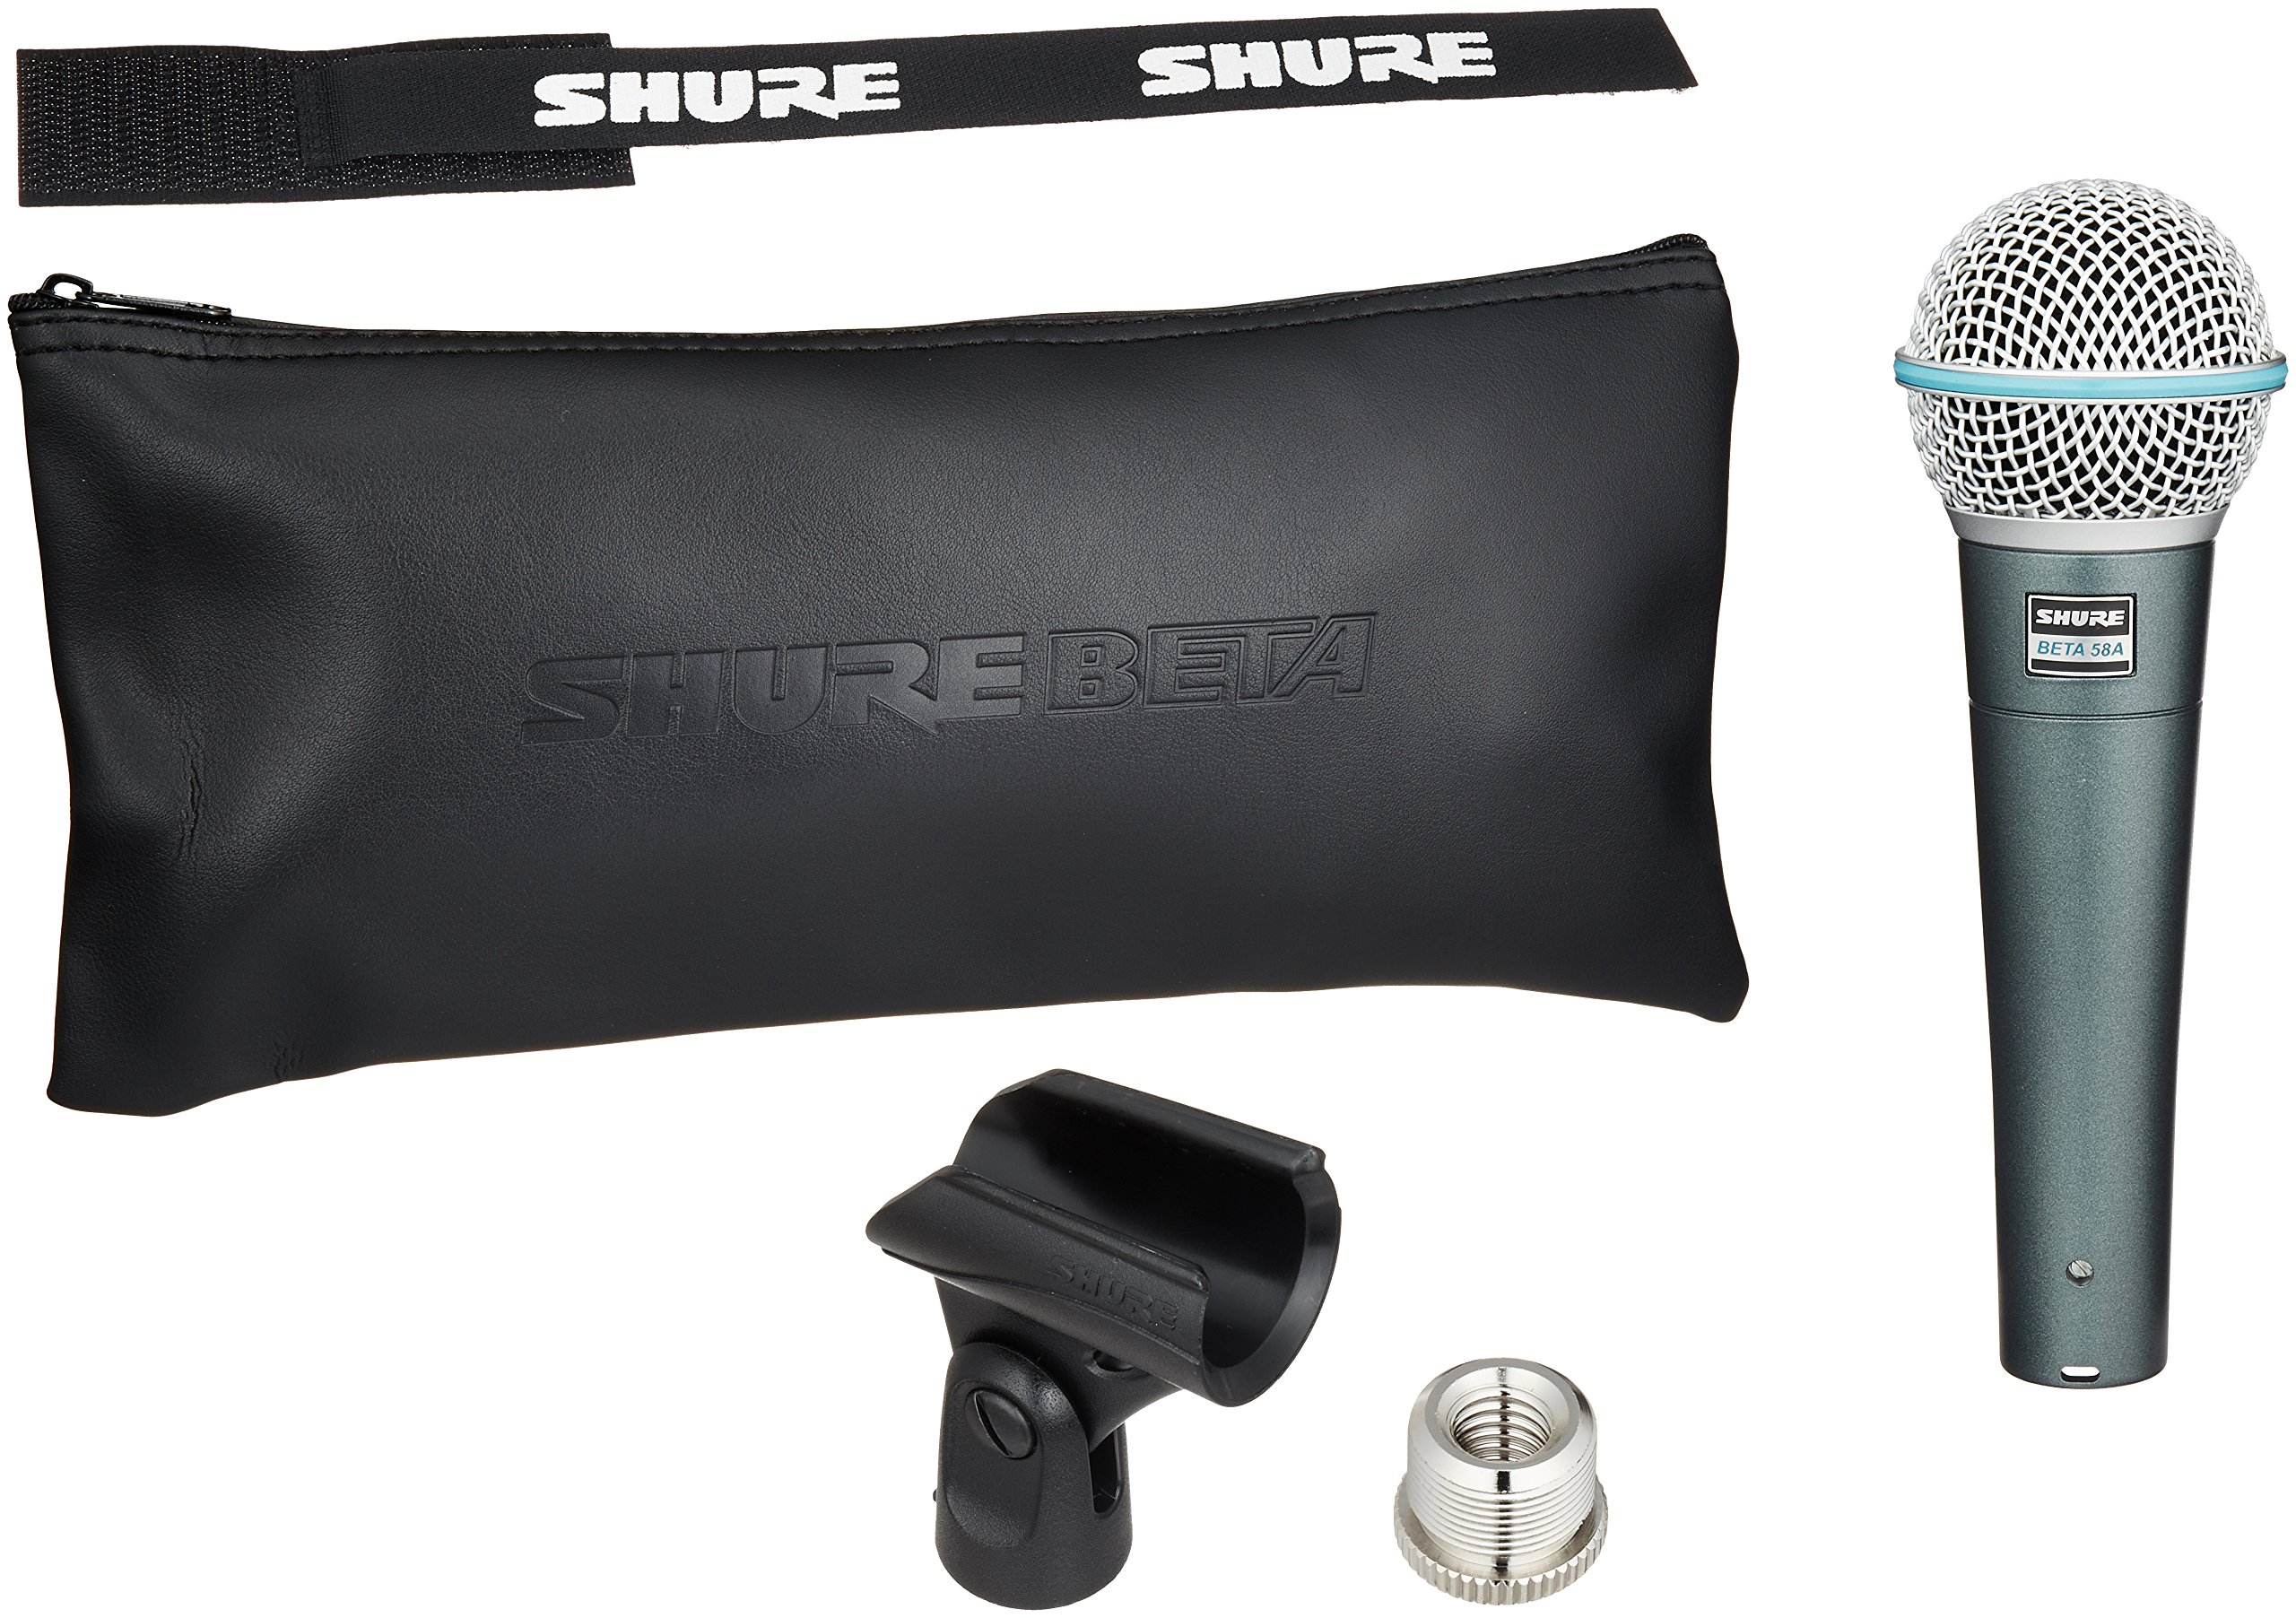 Shure BETA 58A Supercardioid Dynamic Microphone with High Output Neodymium Element for Vocal/Instrument Applications